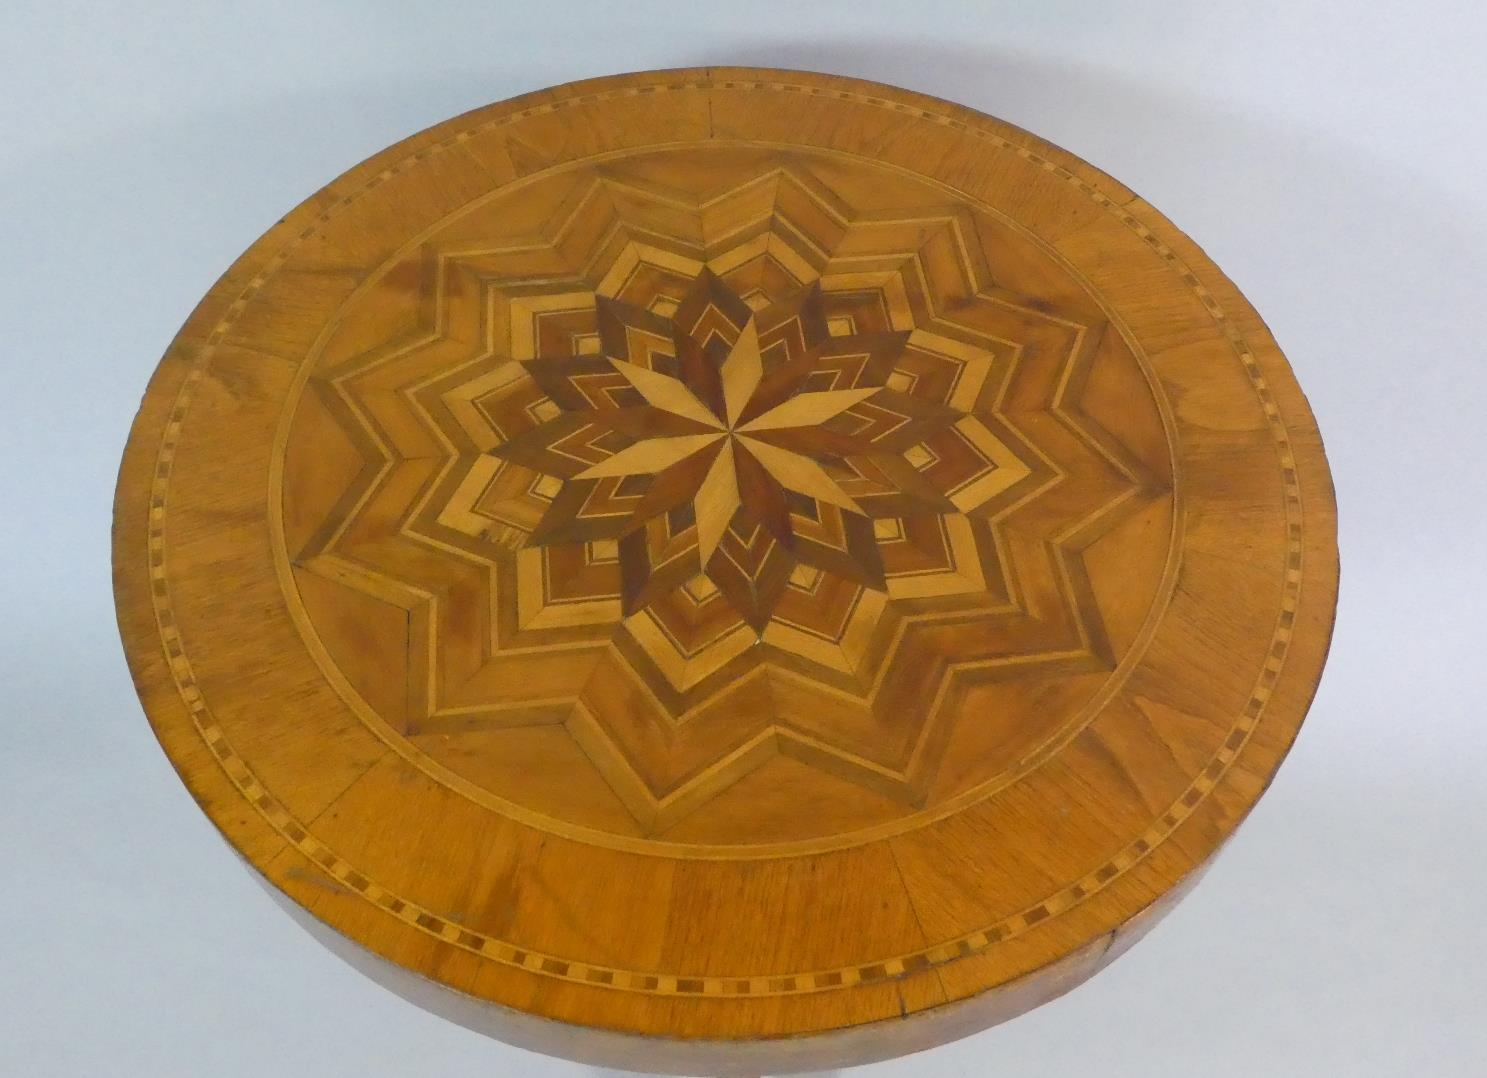 Lot 57 - A Late 19th/Early 20th Century Italian Sorrento Ware Pedestal Table with a Parquetry Starburst